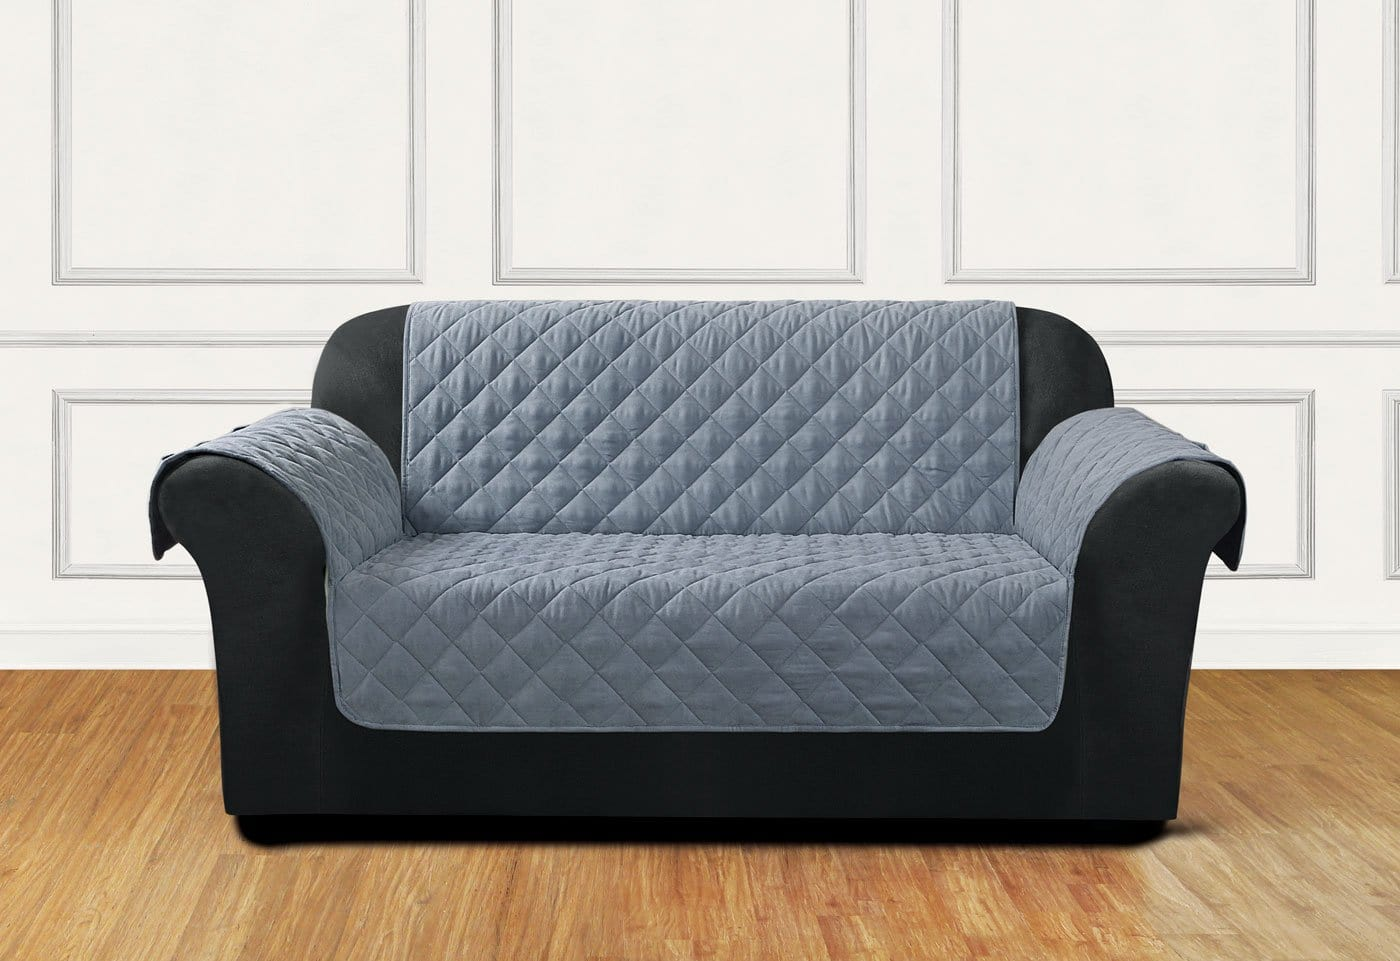 Breathable Mesh Loveseat Furniture Cover One Piece Pet Furniture Cover Polyester Machine Washable - Loveseat / Mist